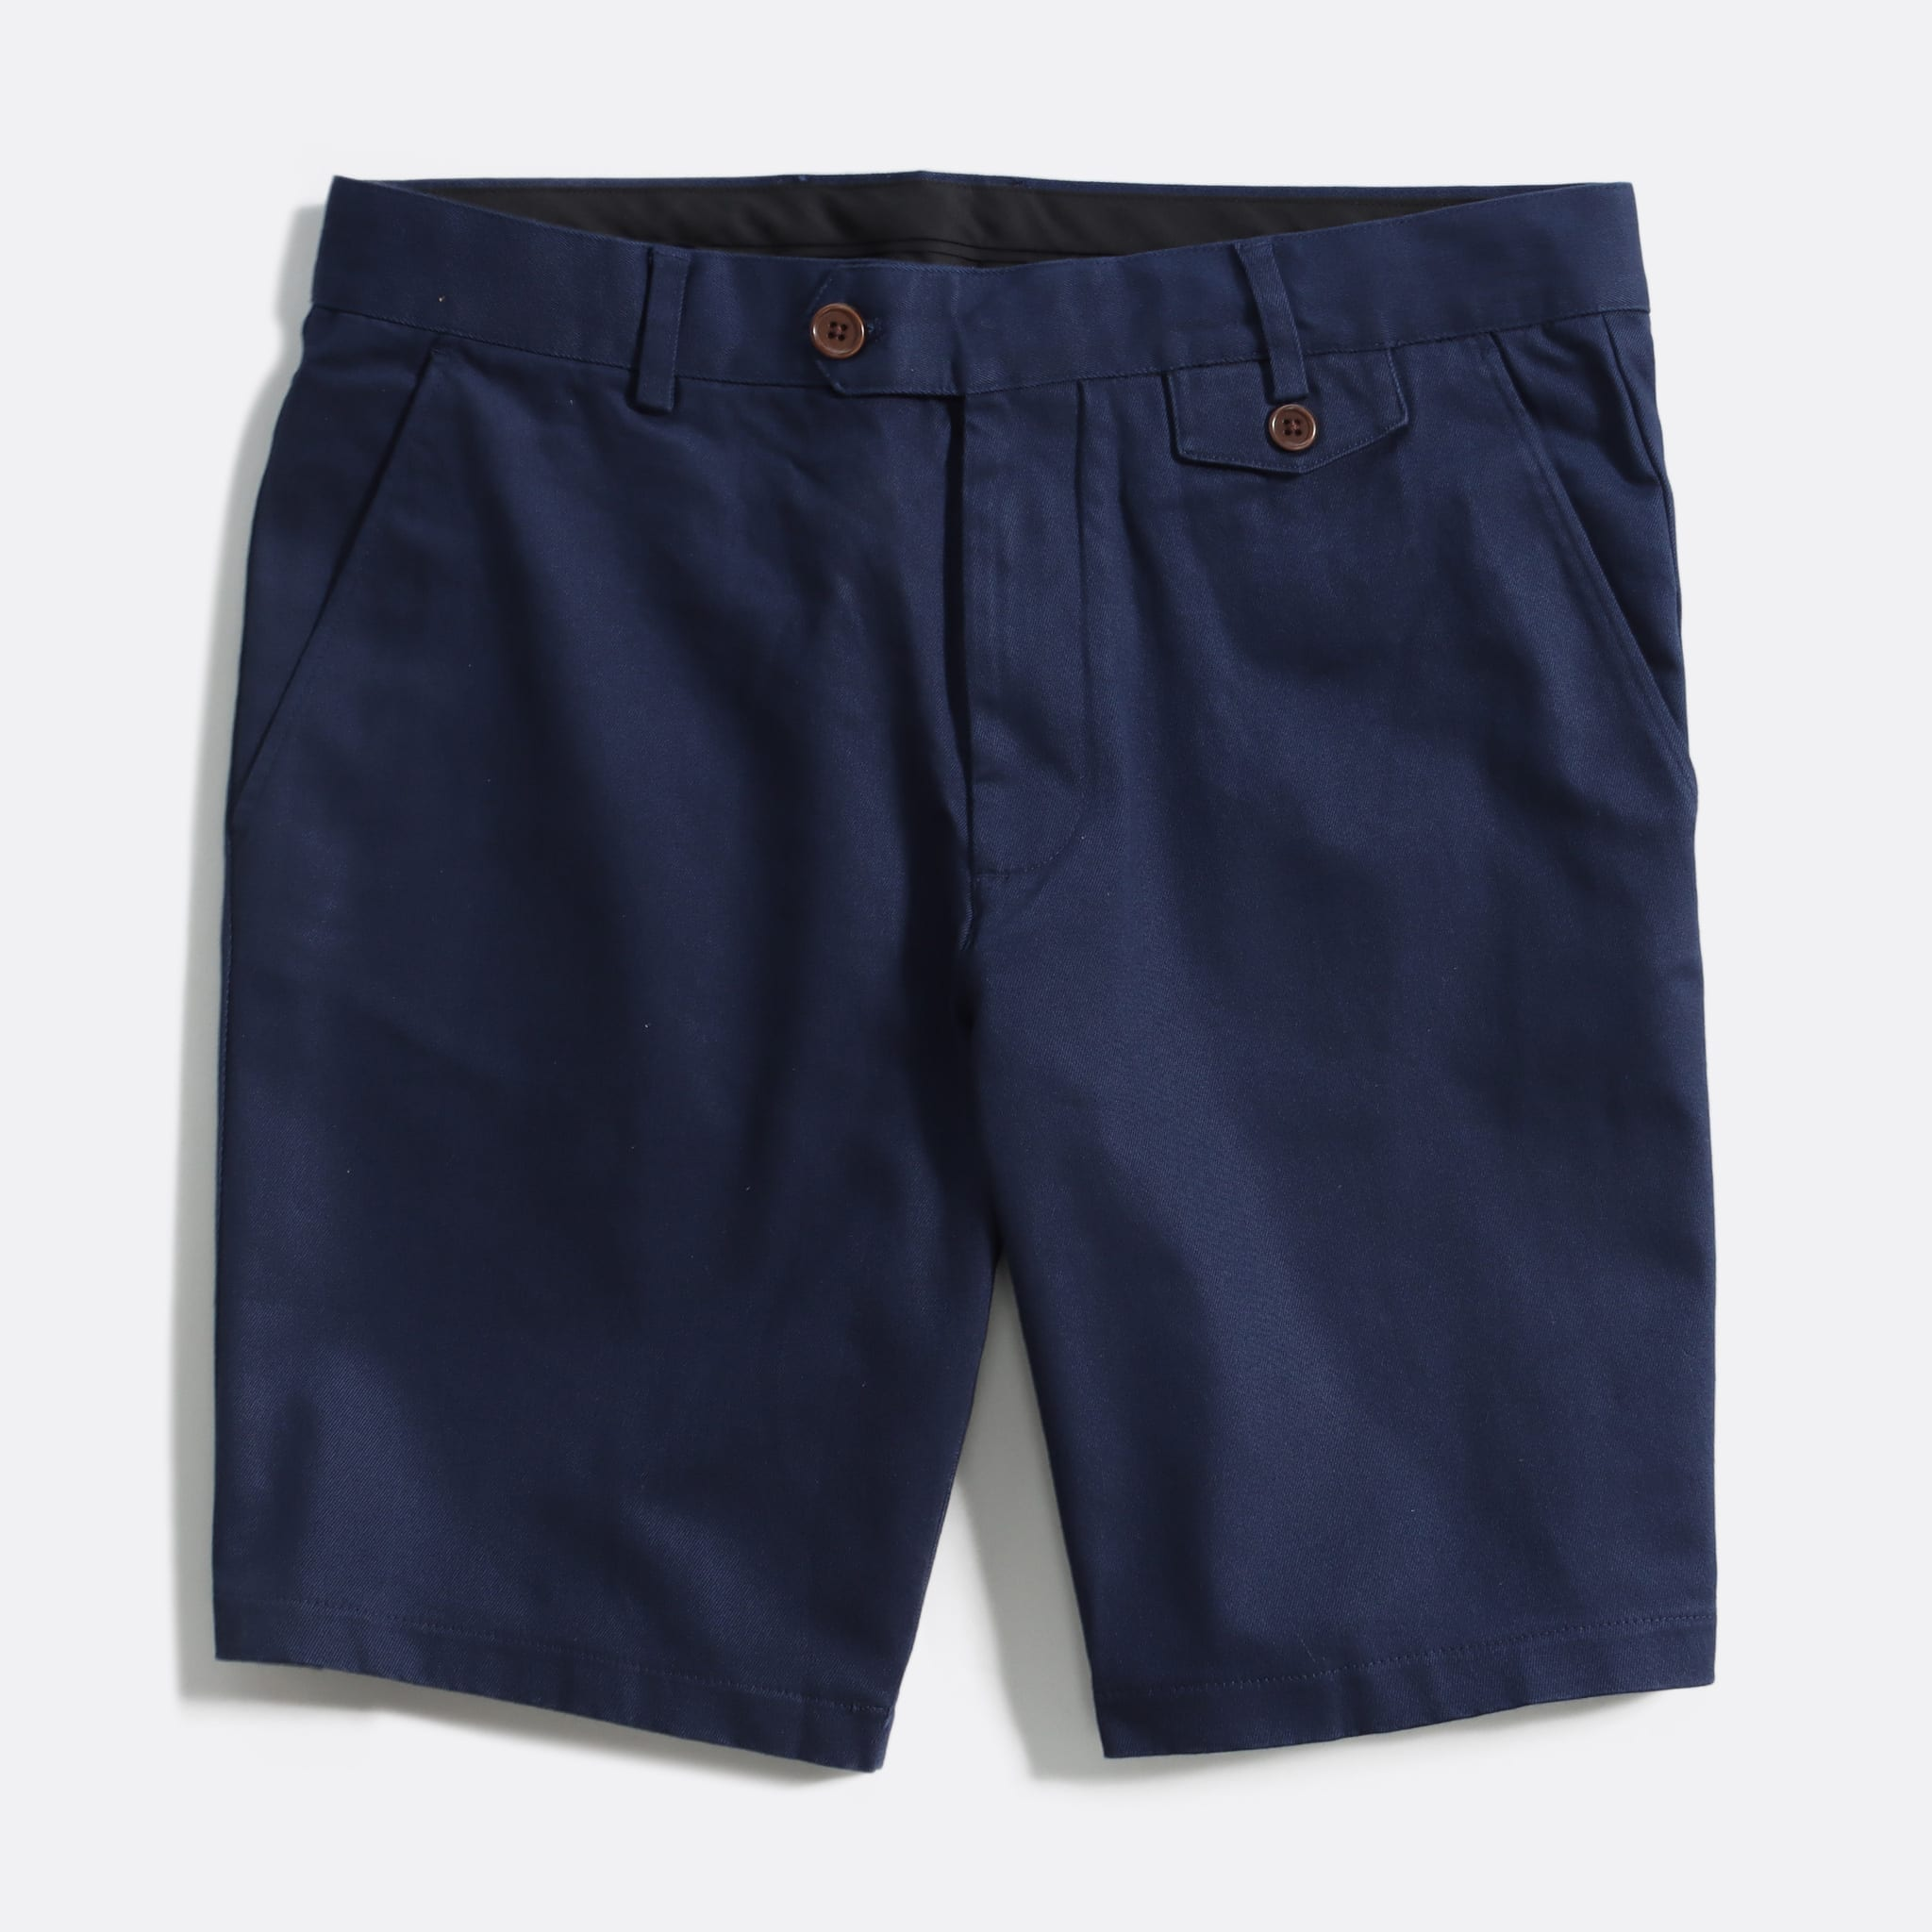 Far Afield Tricker Shorts a Ensign Blue Organic Cotton Twill FabricSmart Casual